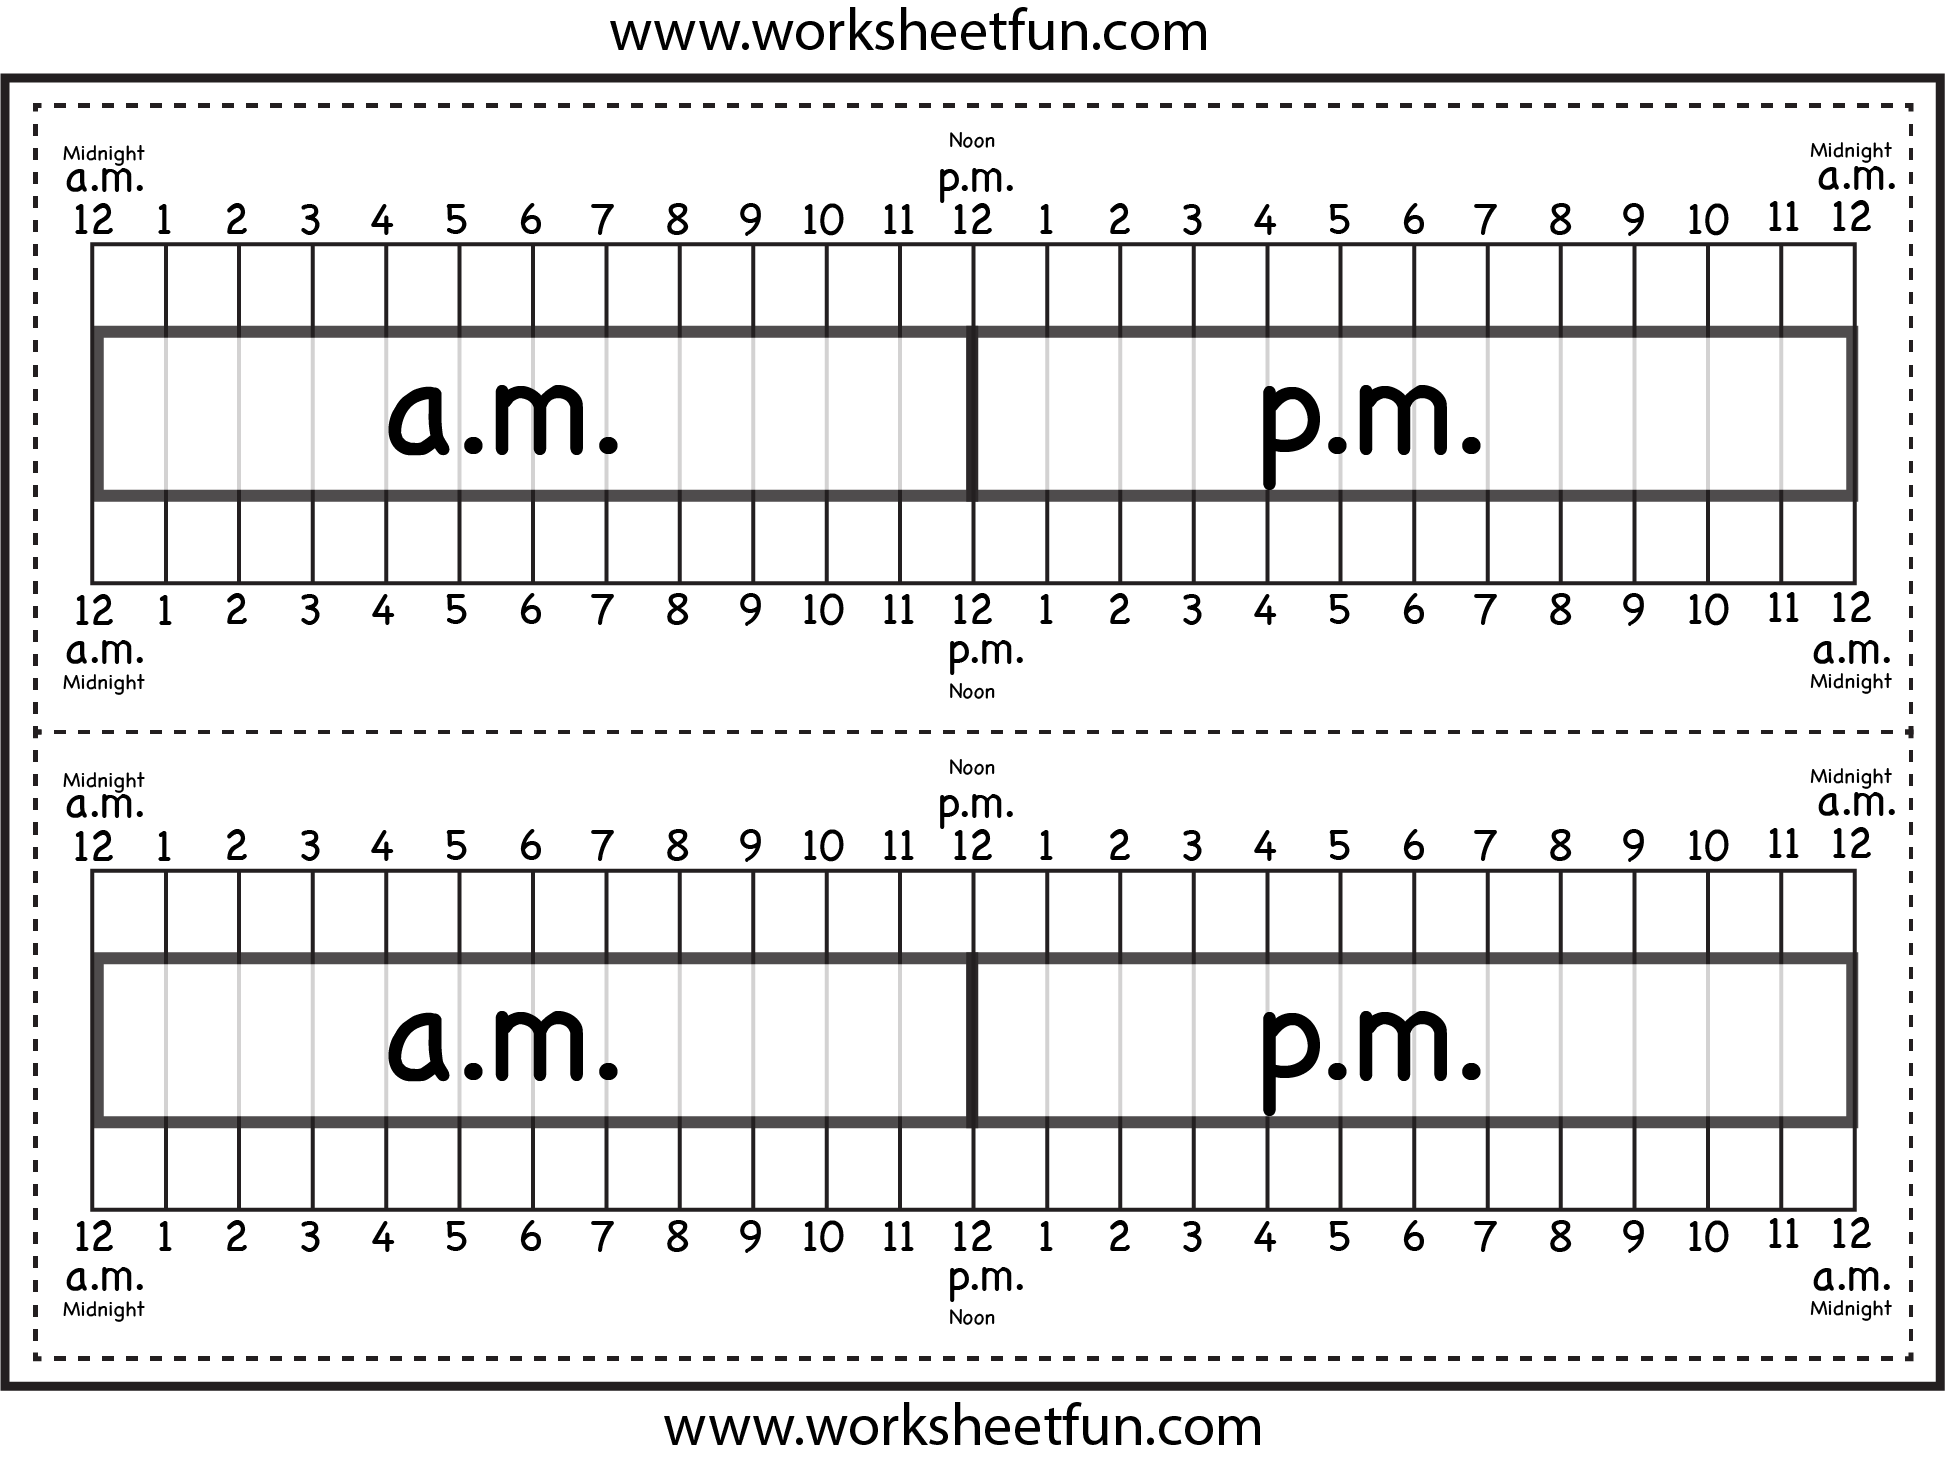 elapsed time ruler worksheet 2 rulers on 1 worksheet printable worksheets teaching math. Black Bedroom Furniture Sets. Home Design Ideas